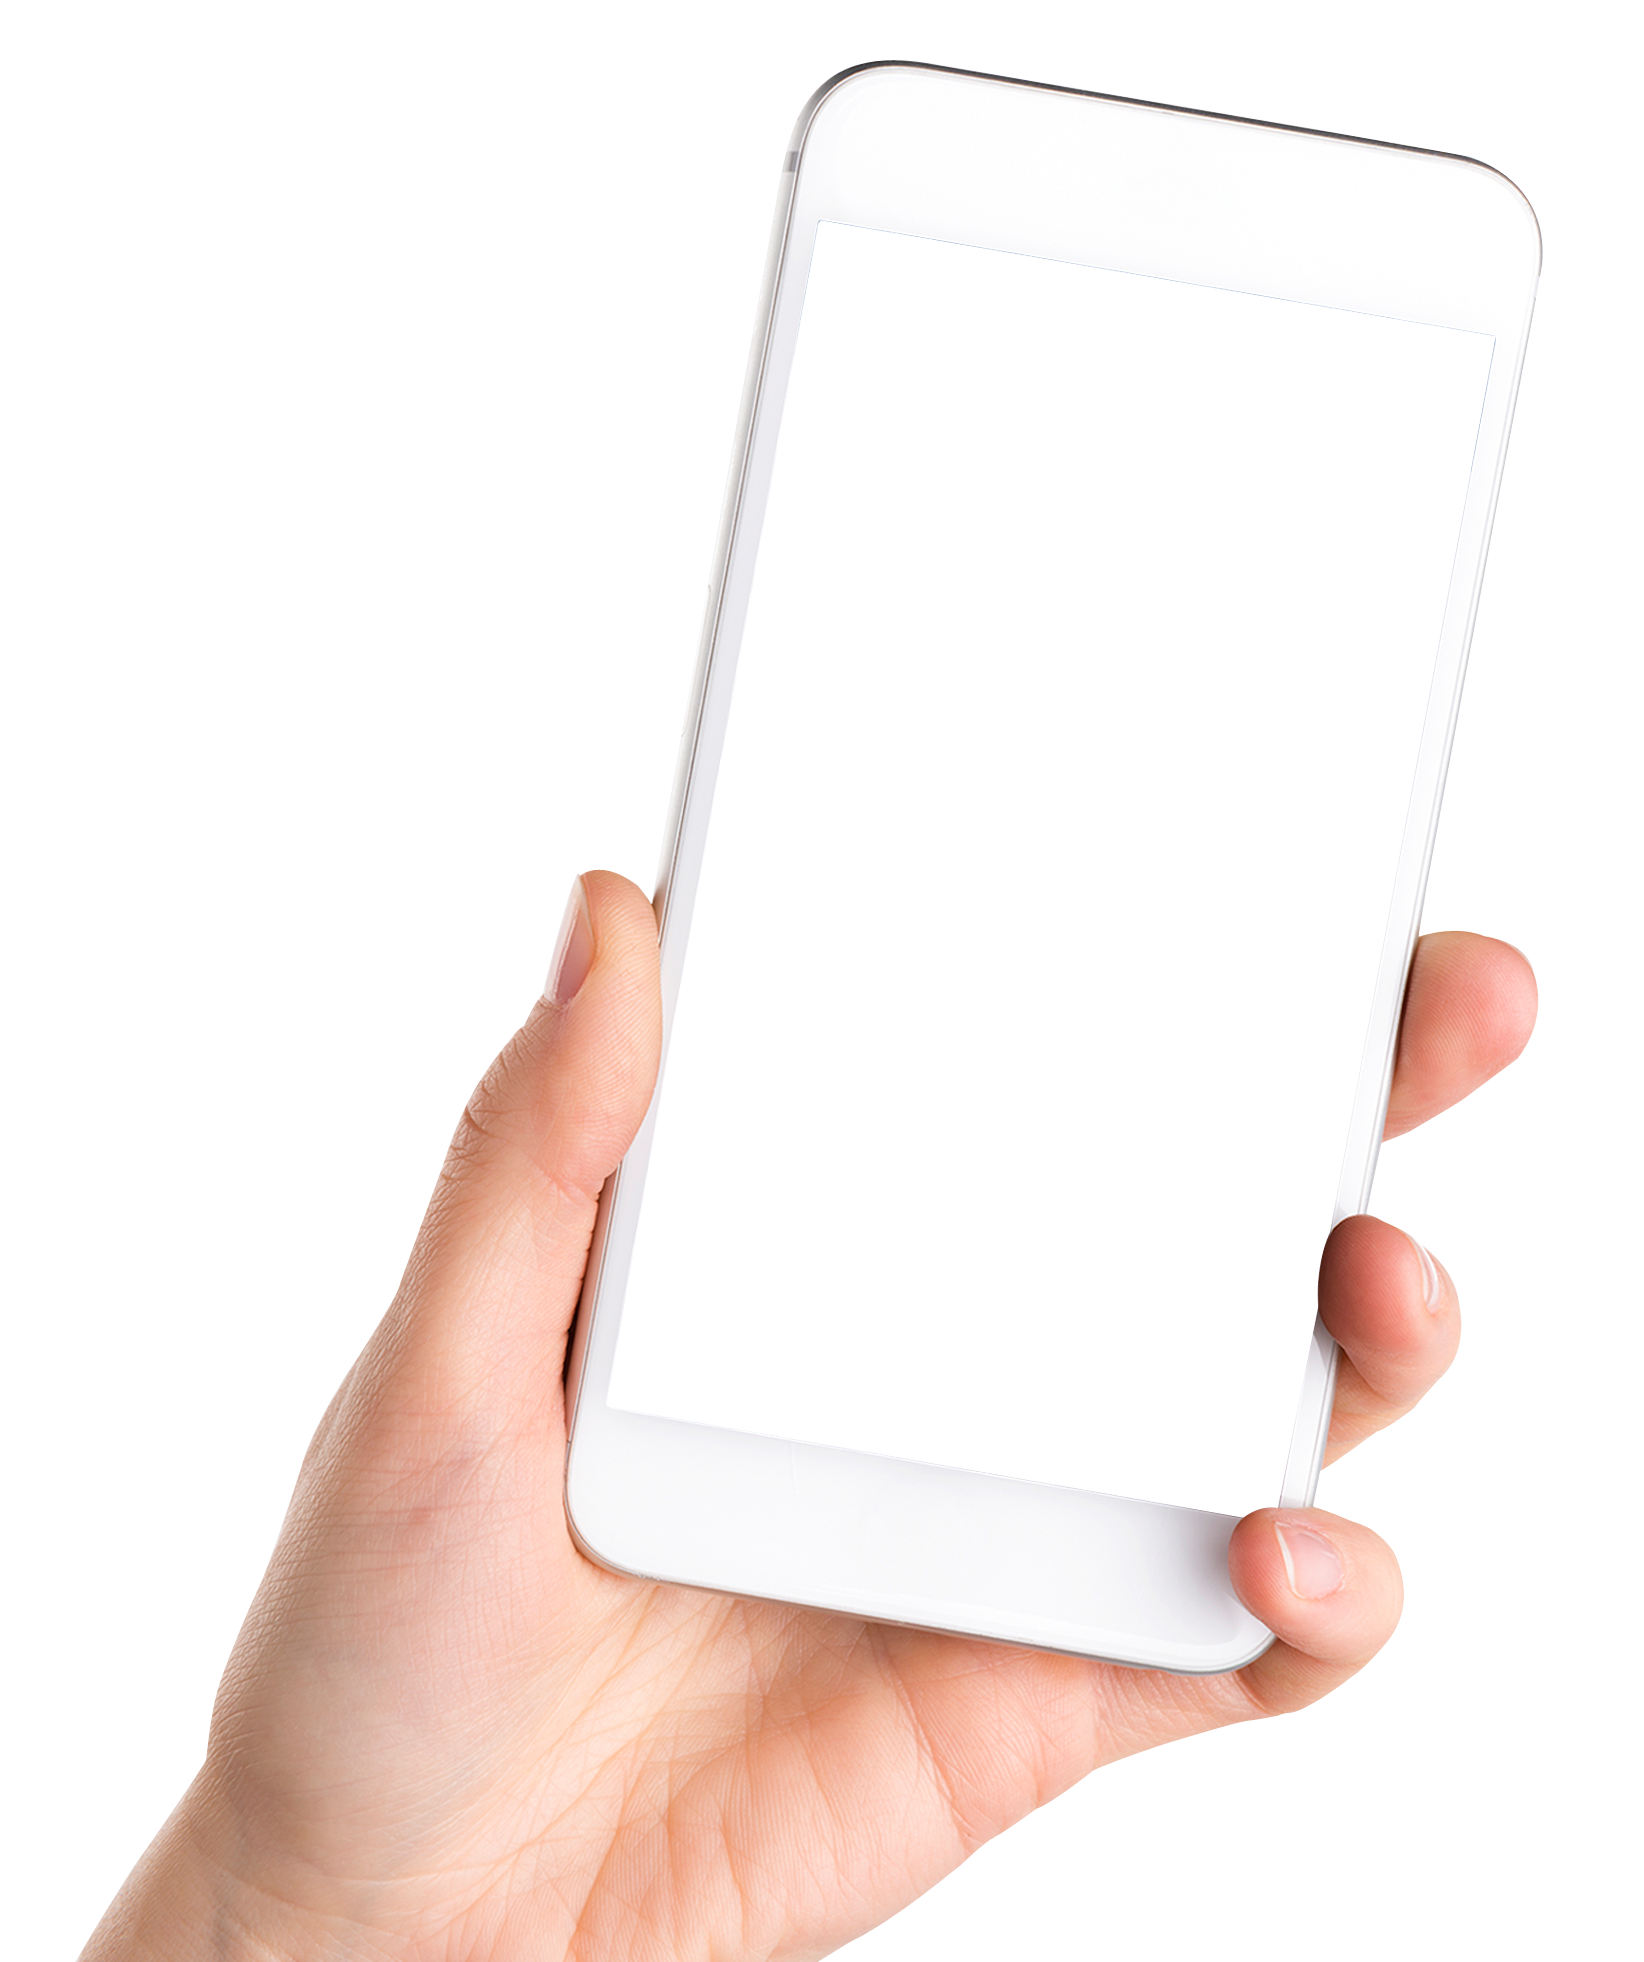 Phone In Hand Png Image Hand Holding Phone Smartphone Art Smartphone All hand png images are displayed below available in 100% png transparent white background for browse and download free hand png transparent photo transparent background image available in. phone in hand png image hand holding